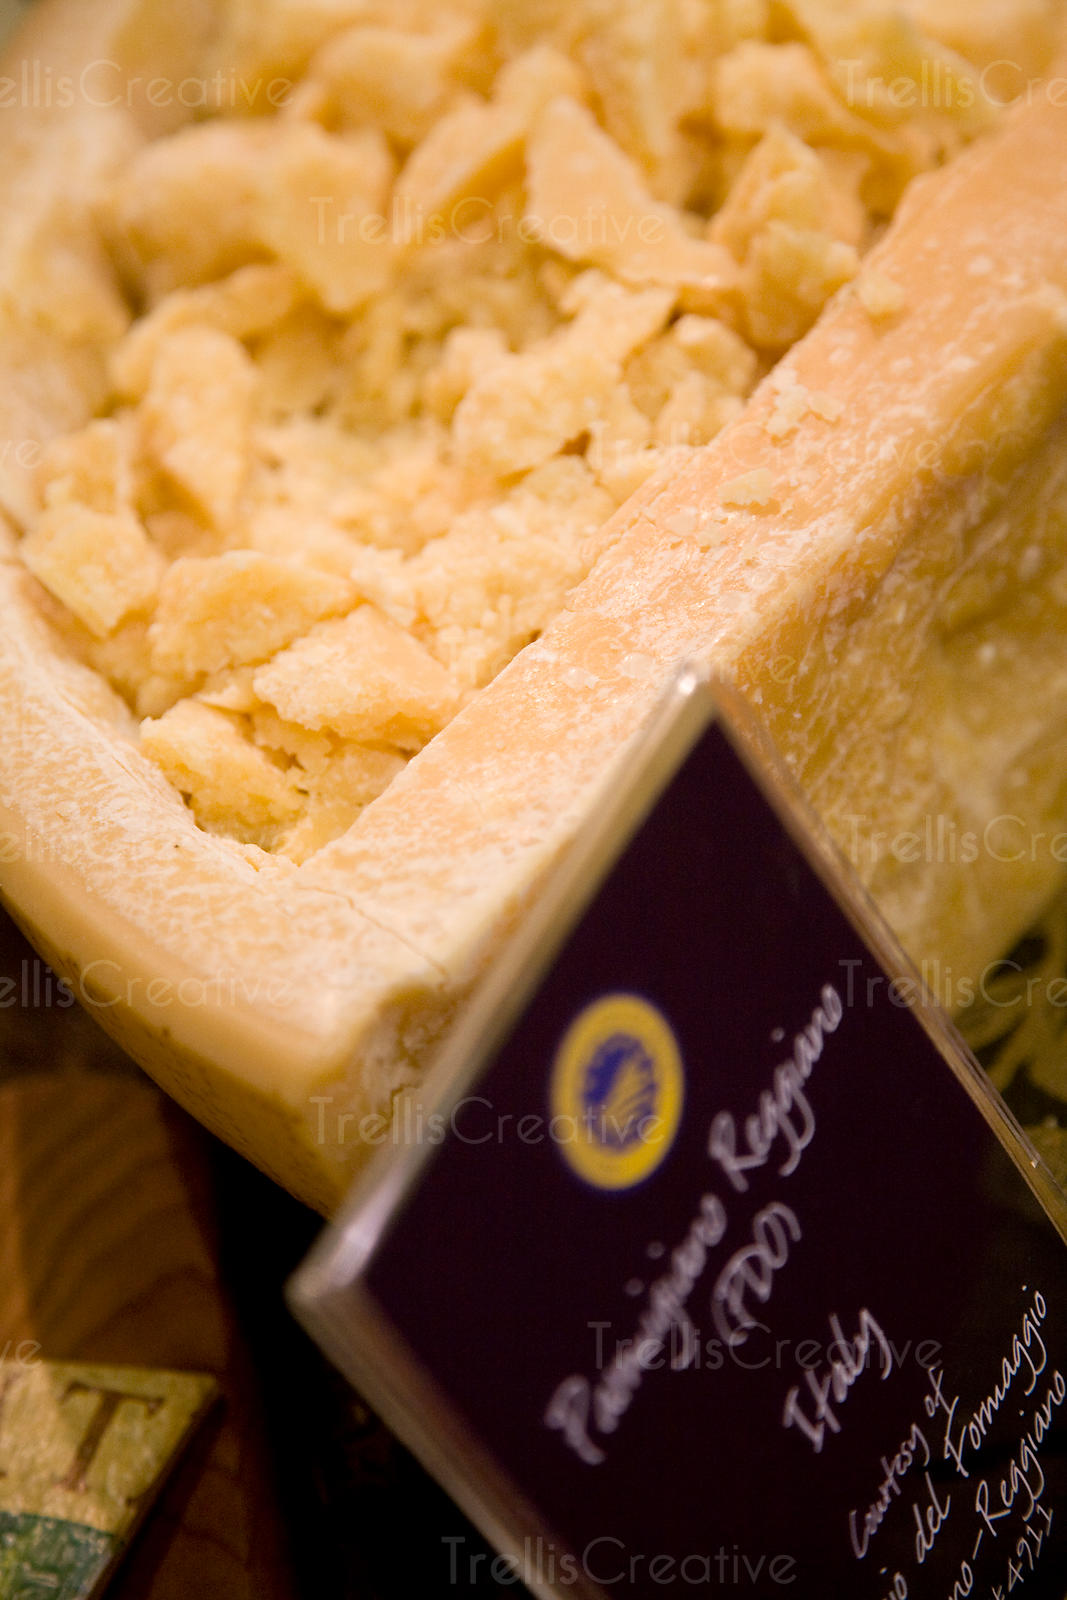 Samples of parmigiano reggiano cheese